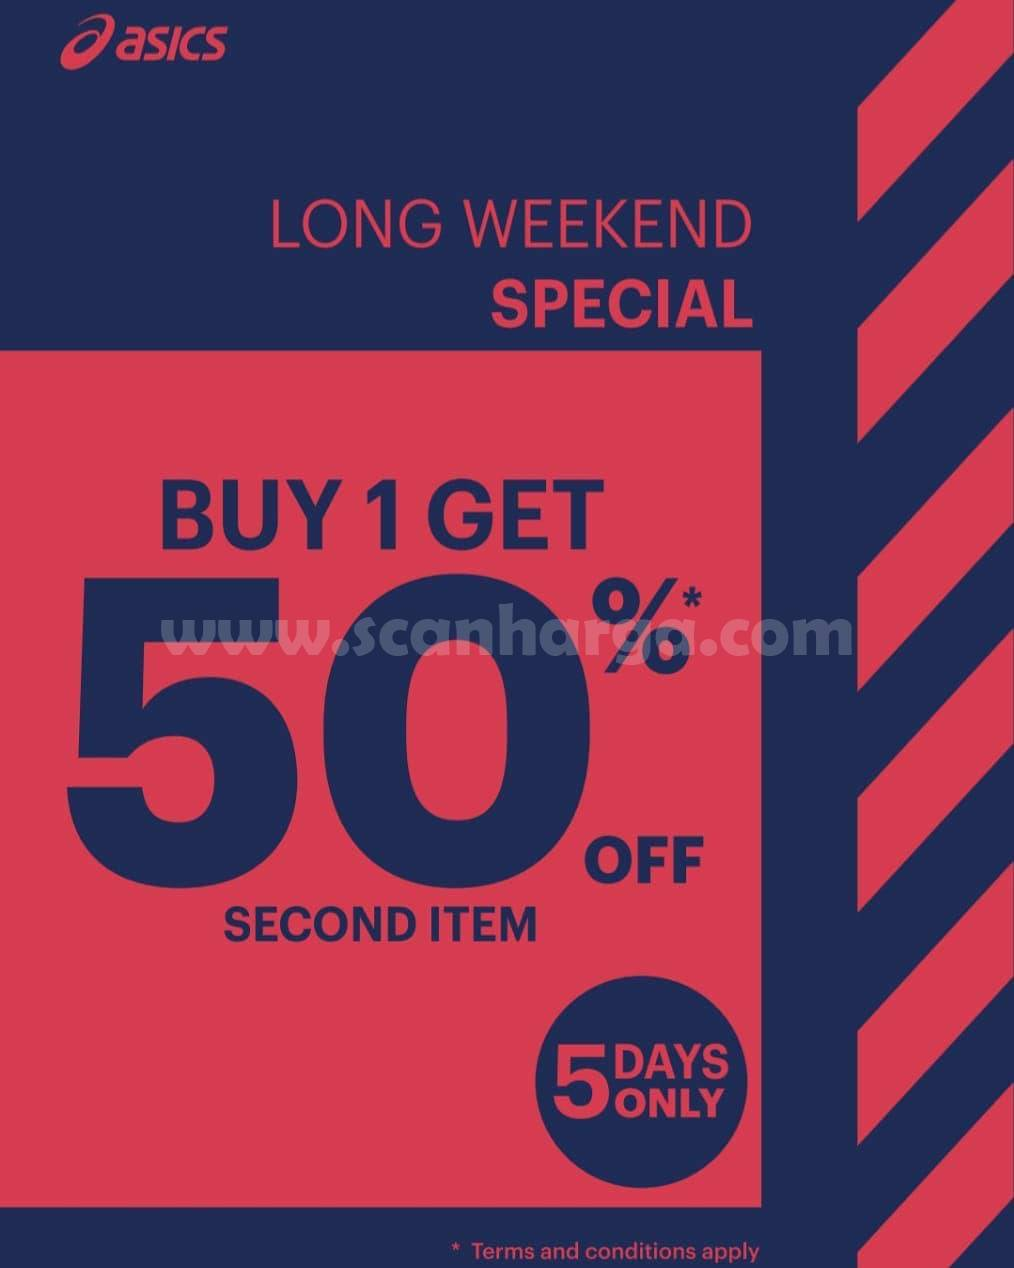 ASICS Special Promo Long Weekend – Buy One Get One Discount 50% Off